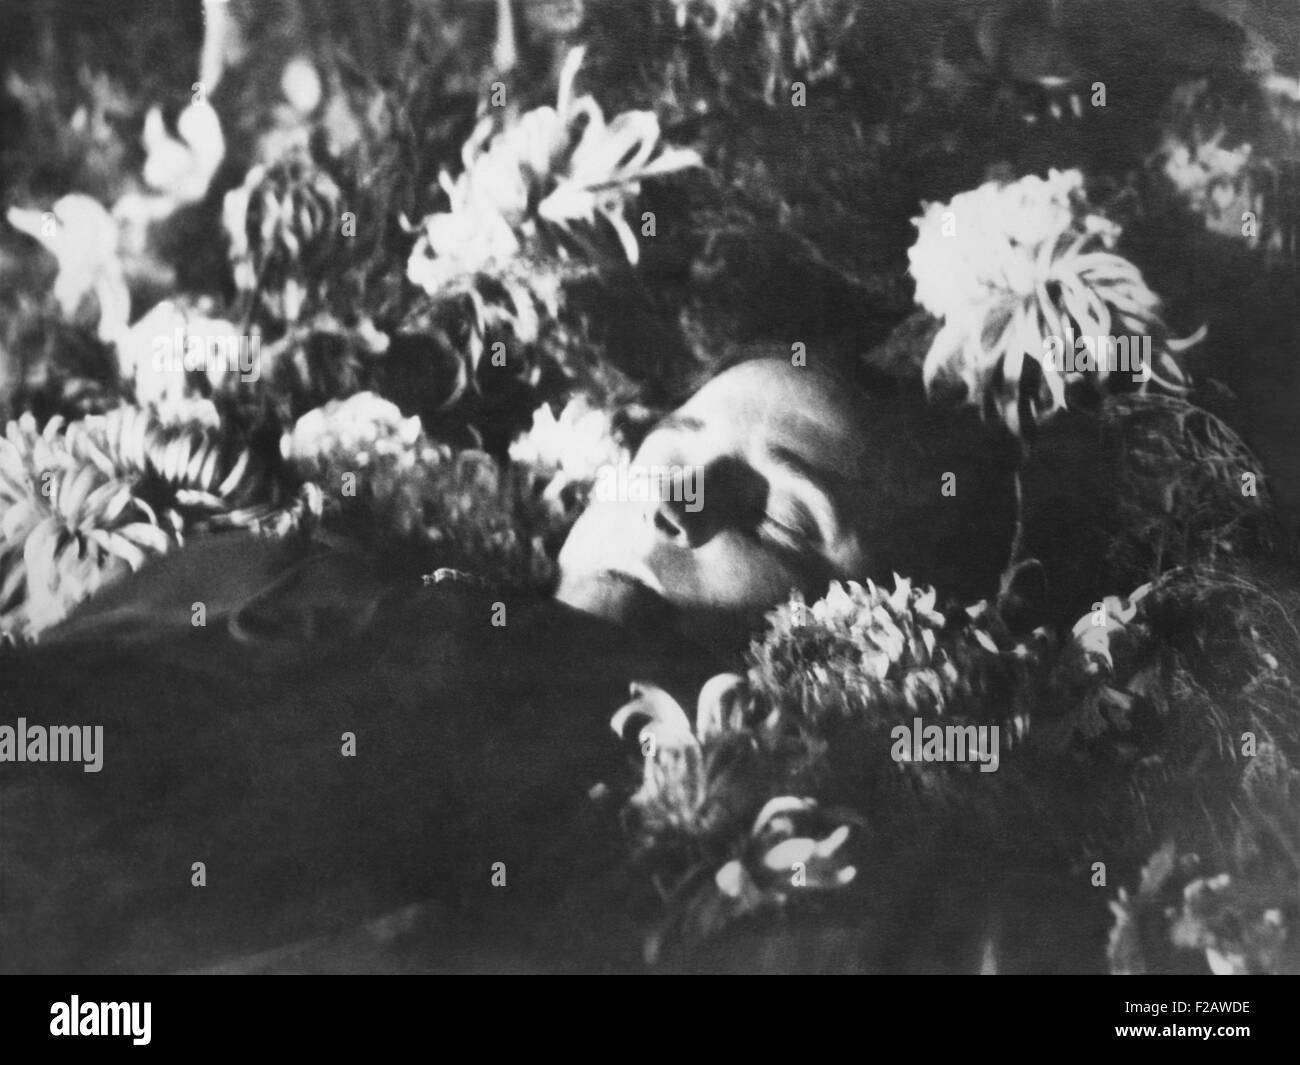 Nadezhda Alliluyeva, 2nd wife of Josef Stalin in her coffin, Nov. 9, 1932. The official cause of her death was appendicitis. - Stock Image